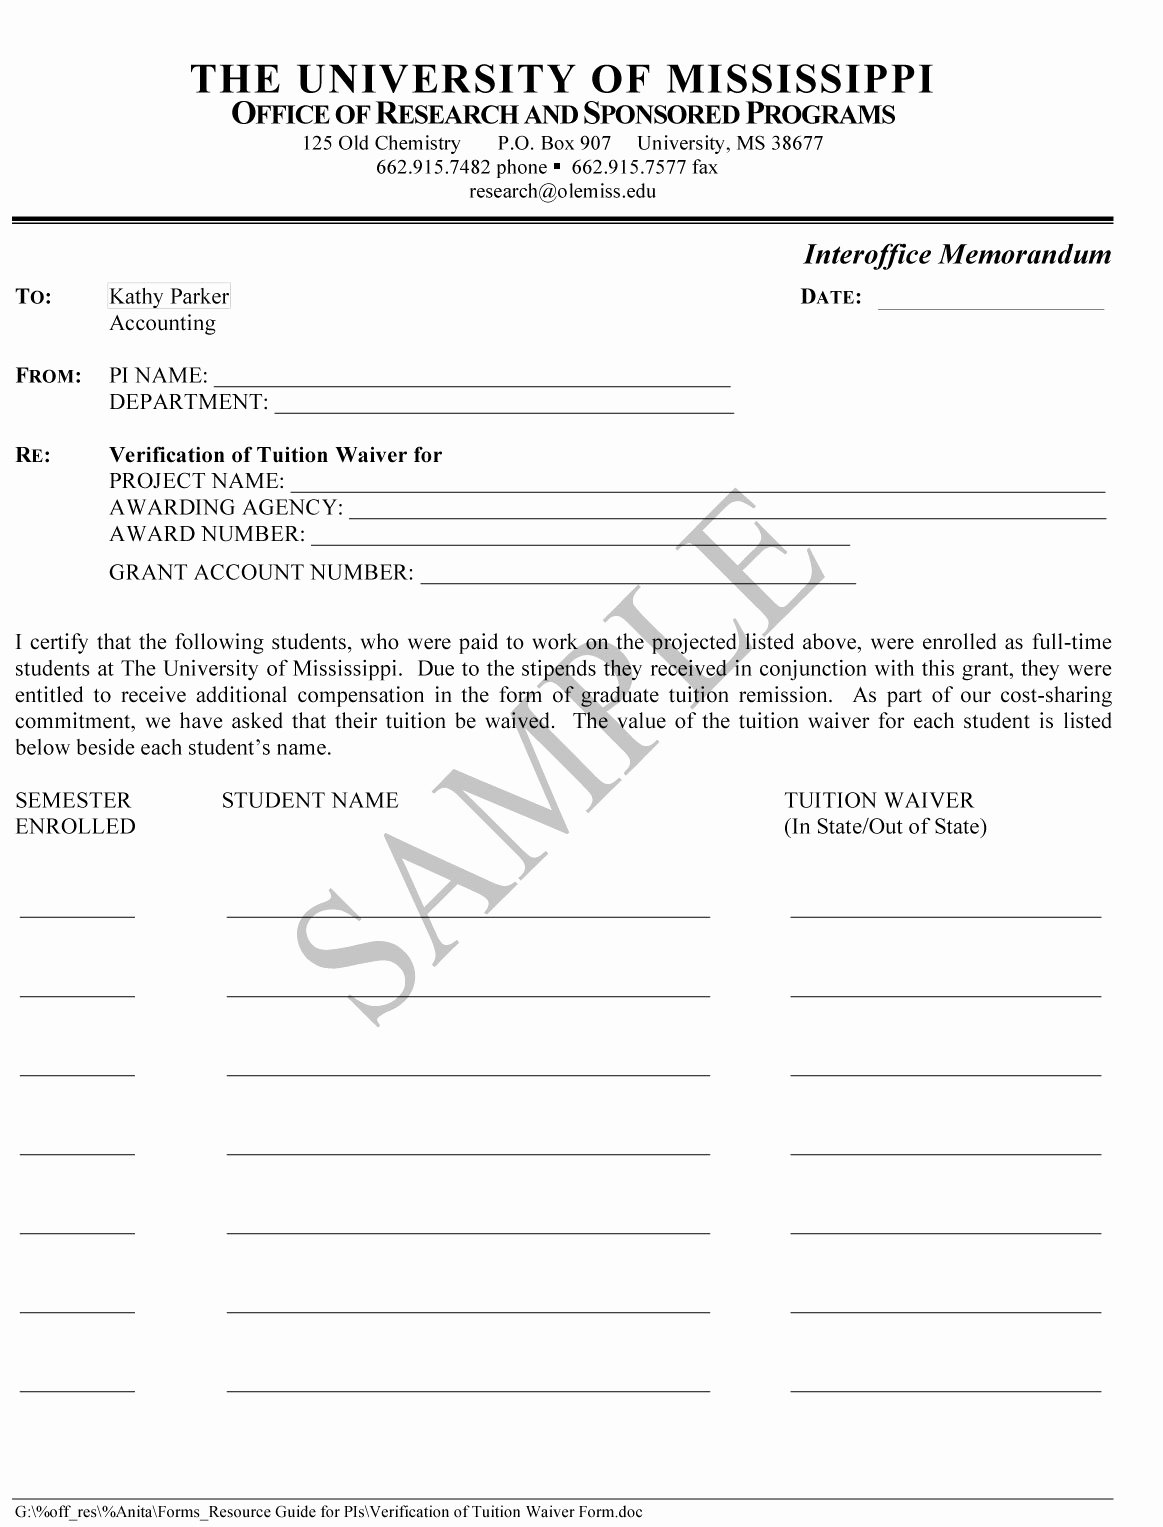 Equipment Release form Luxury Exhibits